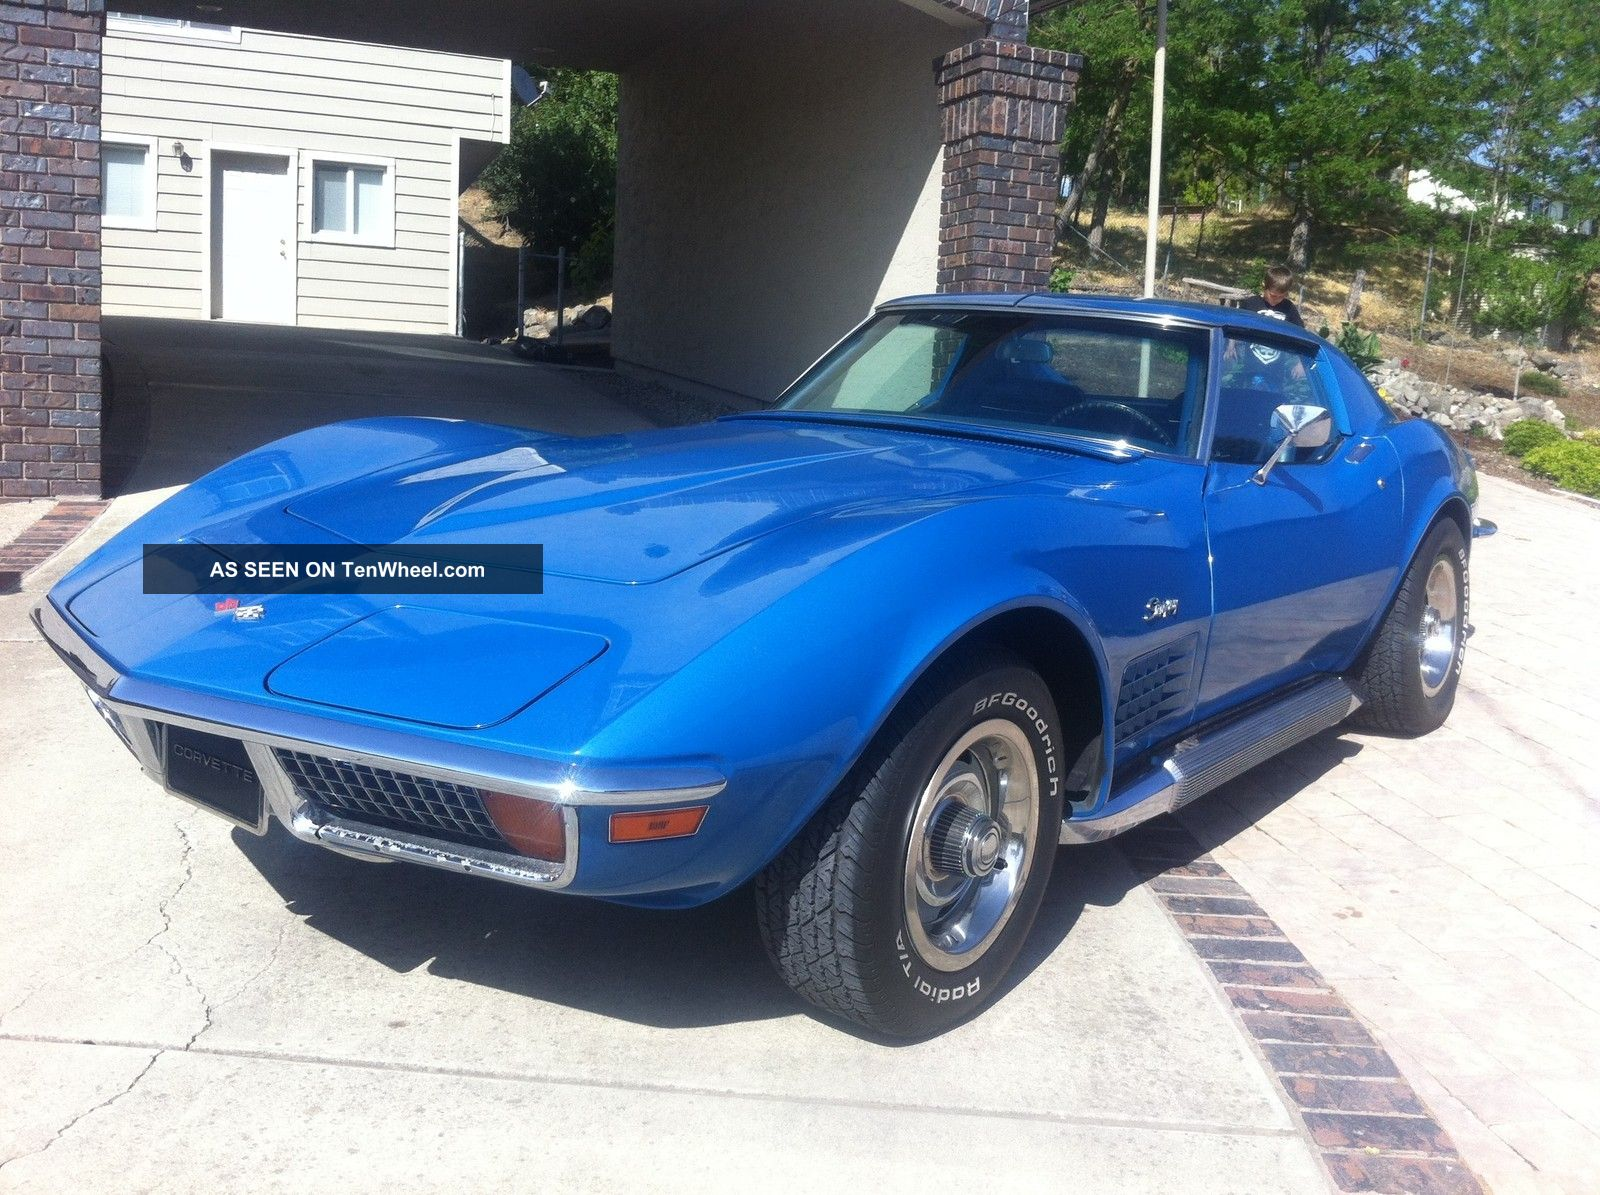 1972 Chevrolet Corvette Stingray Corvette photo